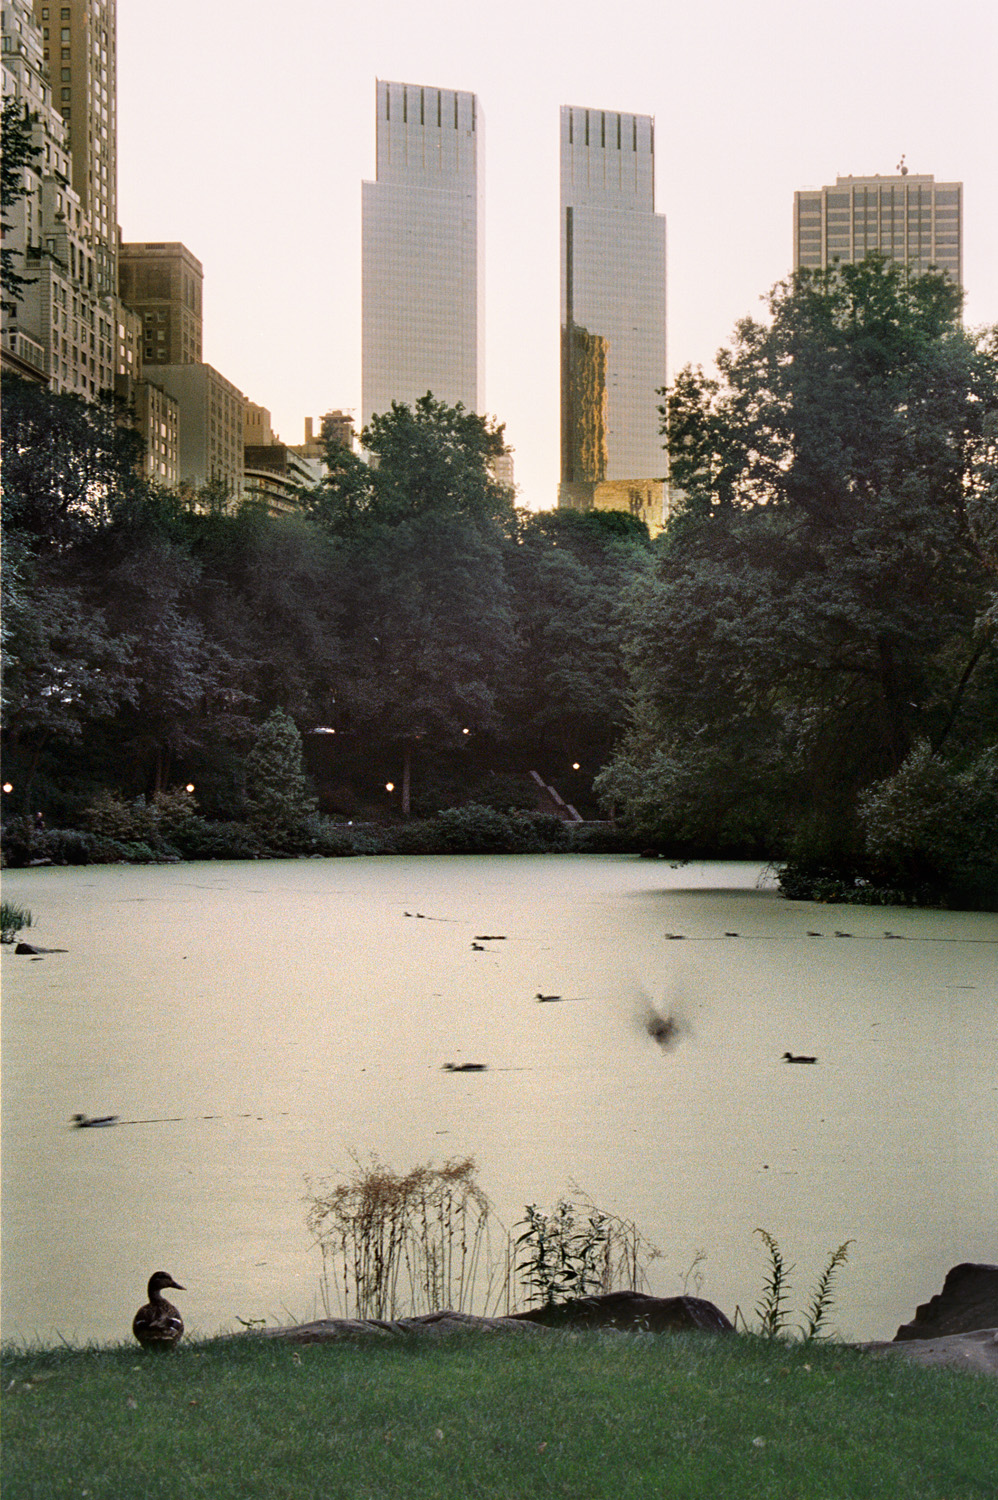 Central Park, New York (RES magazine)